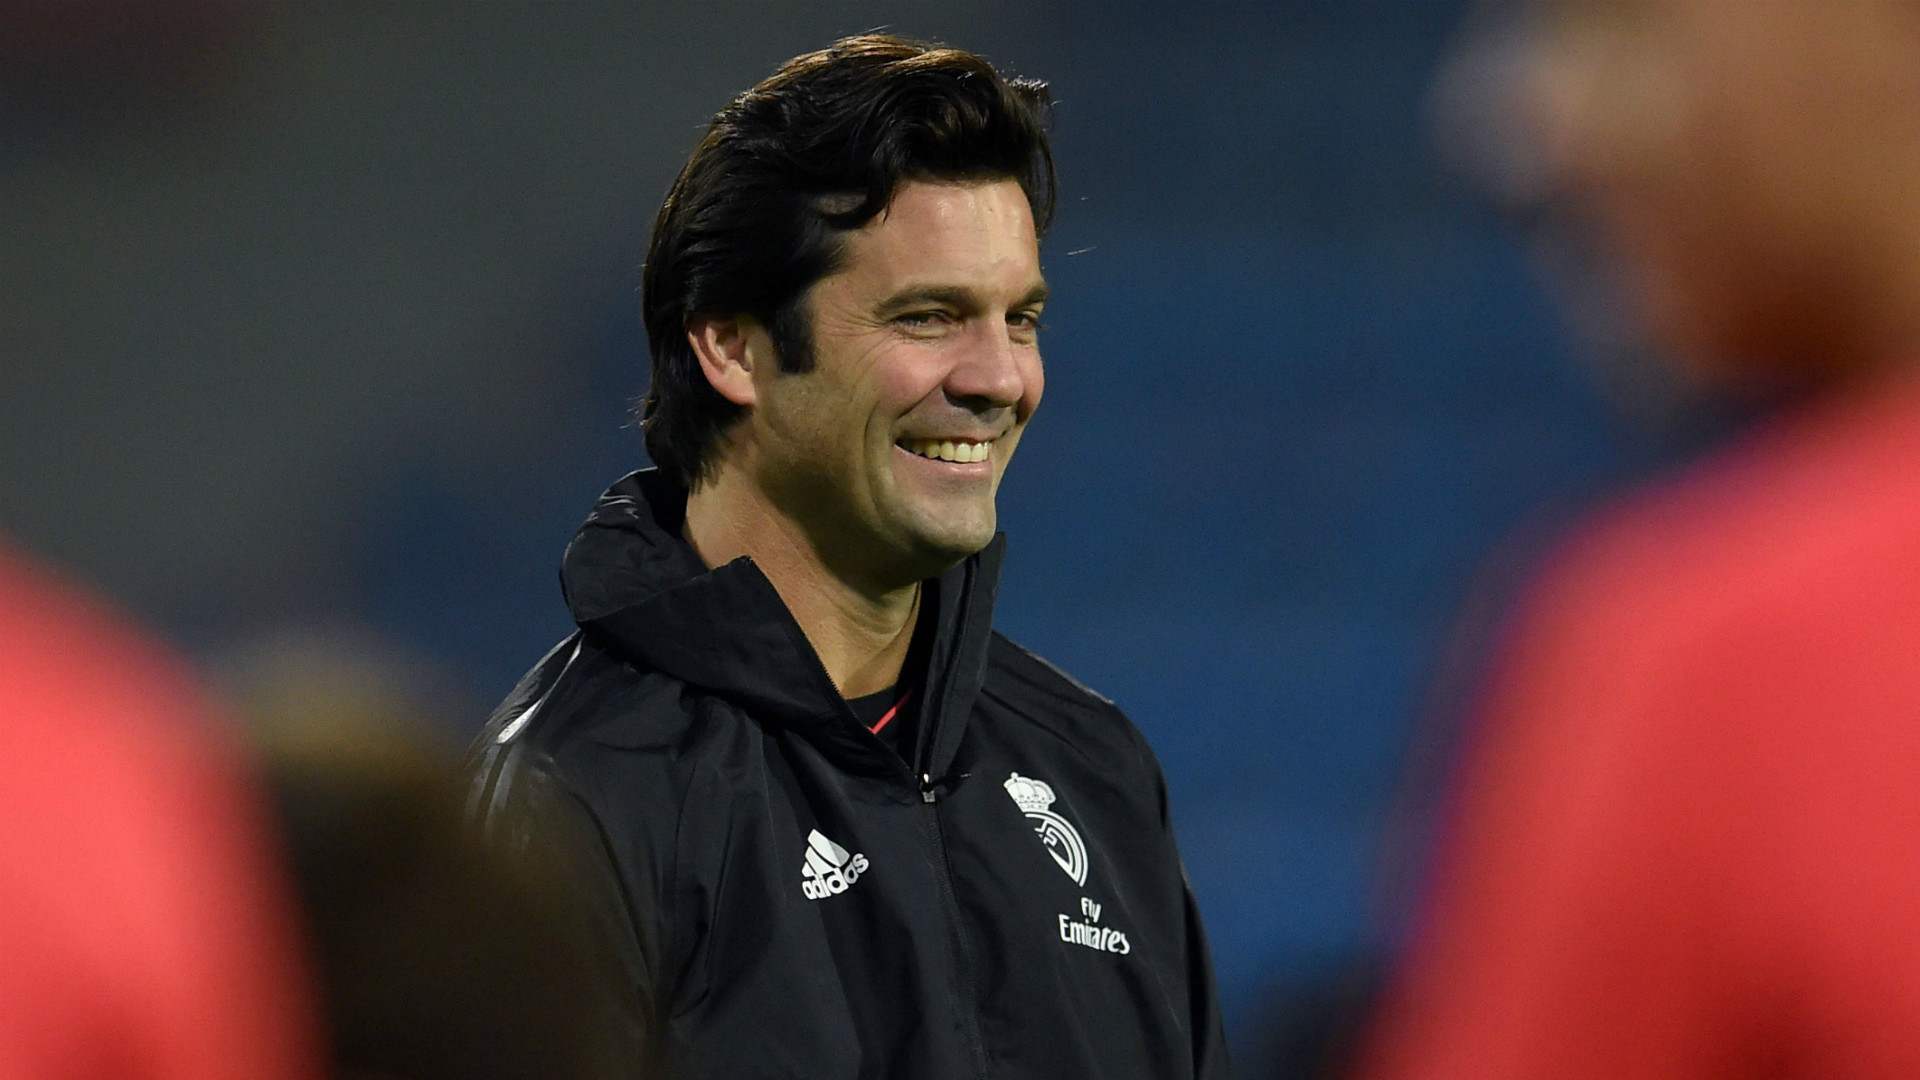 Santiago SOLARI appointed permanent coach of Real Madrid